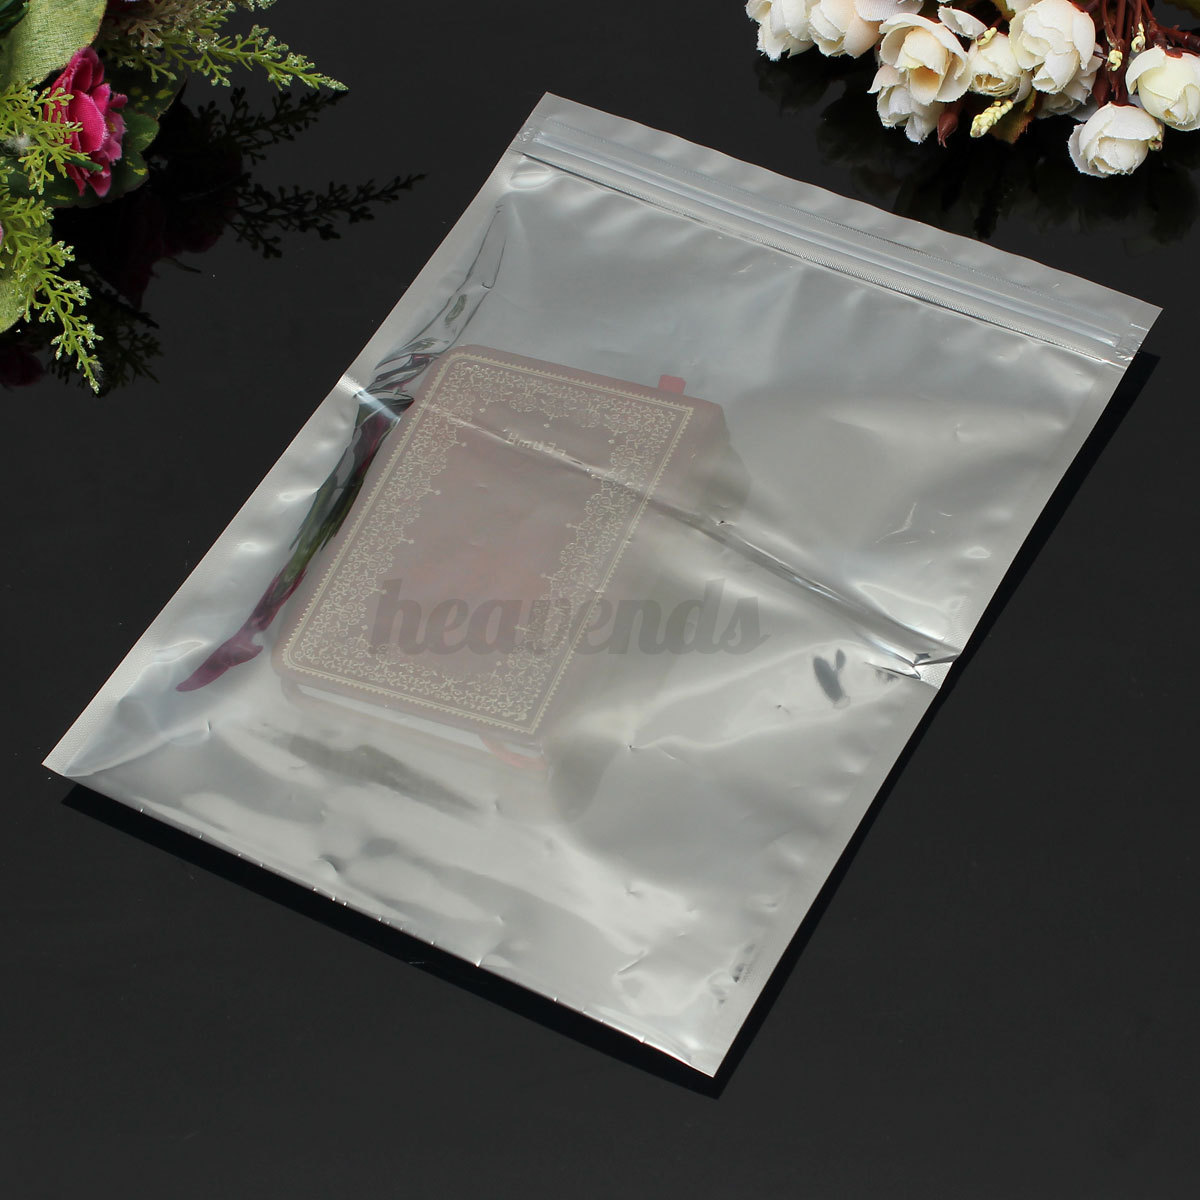 10pcs sachet bag plastique fermeture zip refermable anti statique ziplock pochon ebay. Black Bedroom Furniture Sets. Home Design Ideas